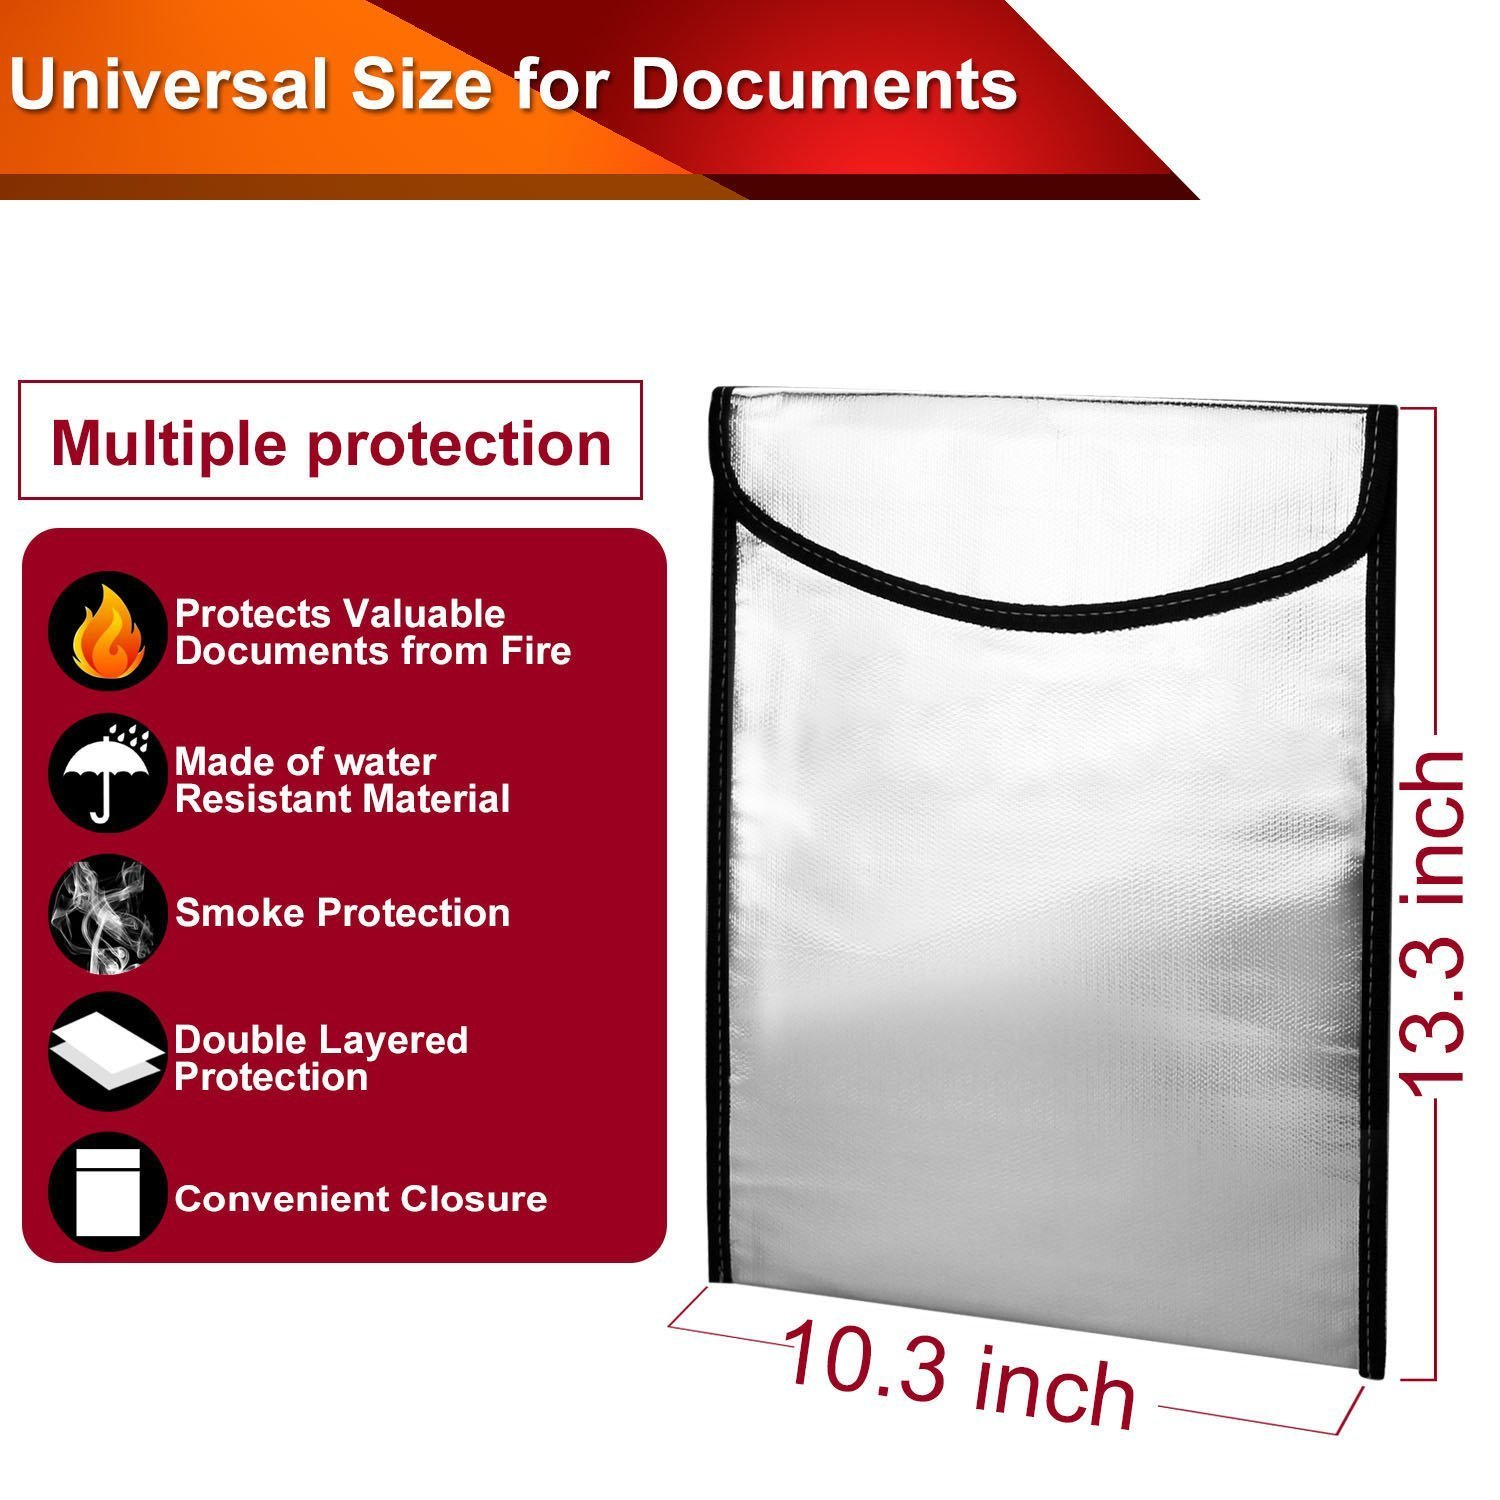 Fire Protective Security Storage Bag for Money Fiberglass Legal Documents and Jewelry Zipper Velcro Closure Waterproof Fireproof Safe Document Bag 15 x 12 x 2.5, Black